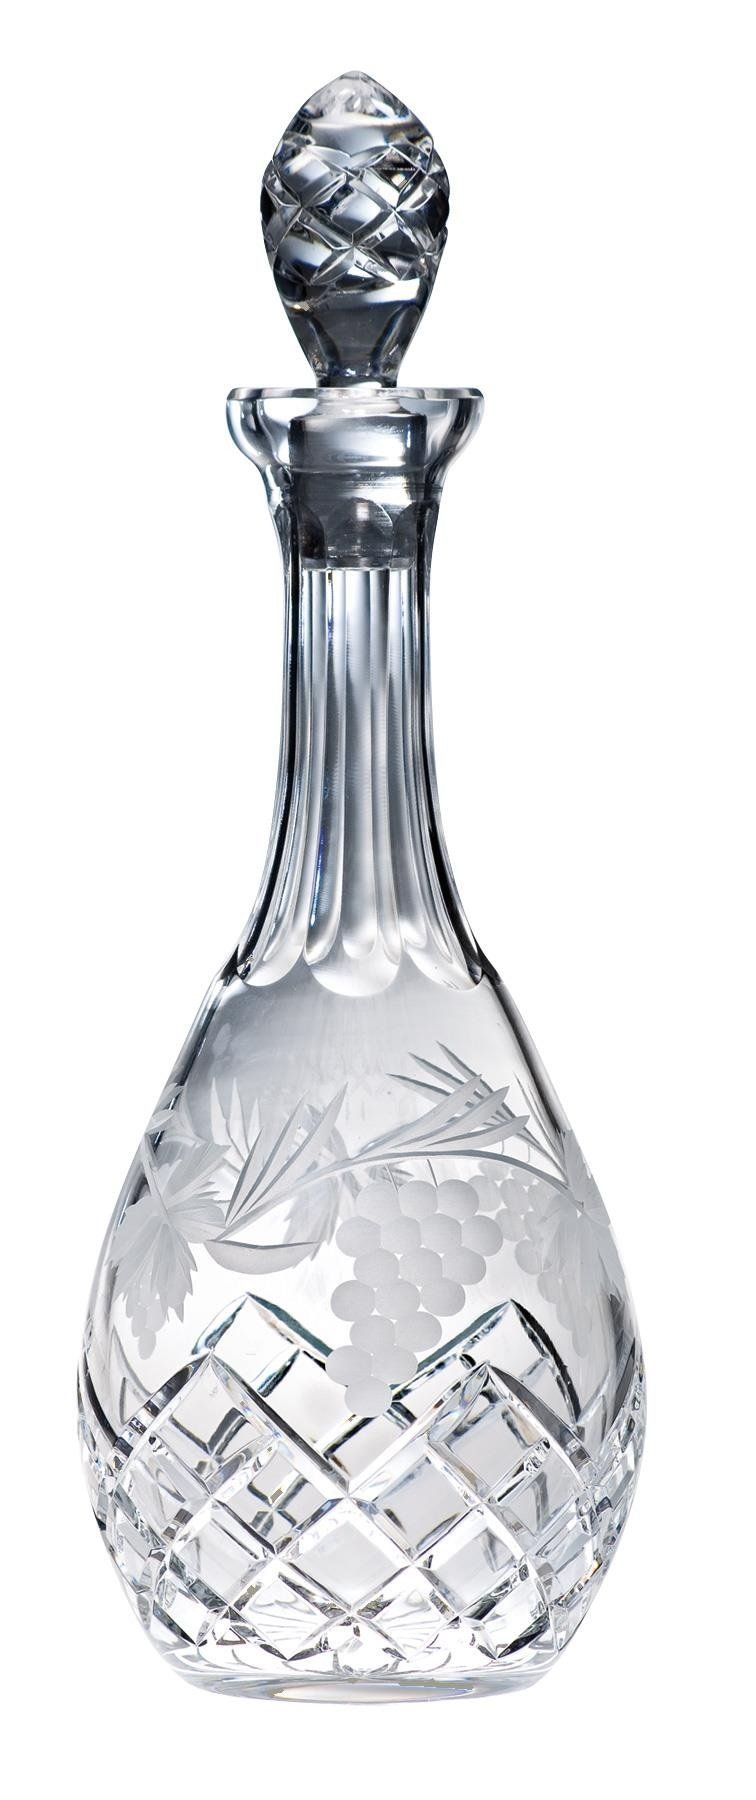 Majestic Gifts 36-Ounce Hand Cut Crystal Decanter, Large, Clear, Grape Design